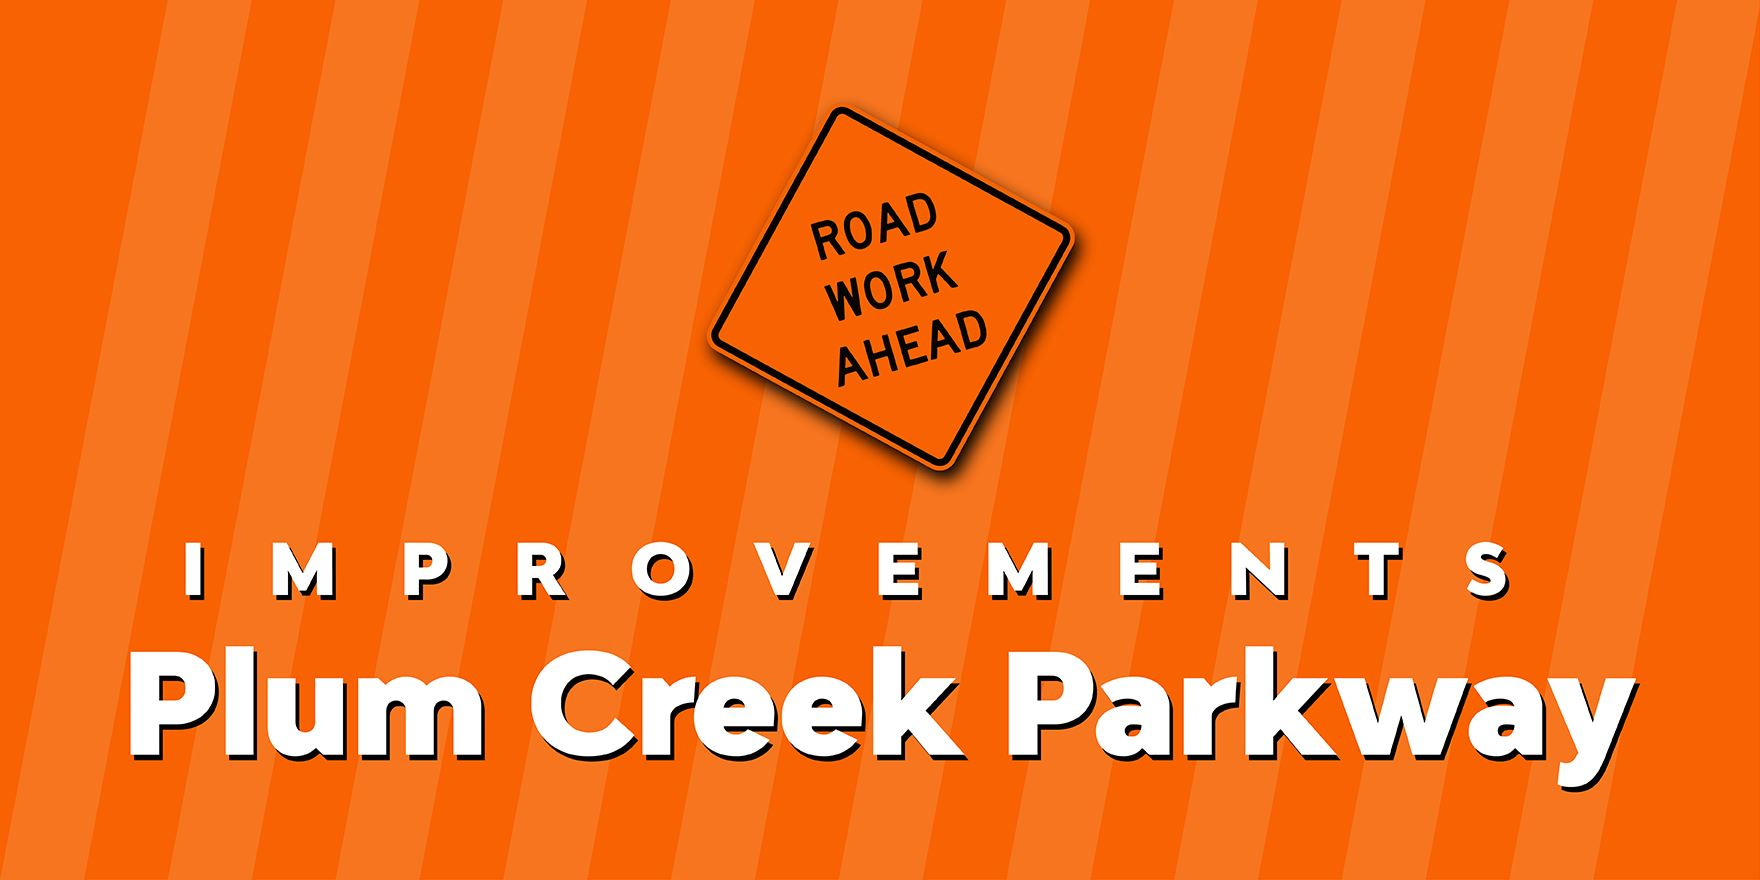 Plum Creek Parkway Improvements